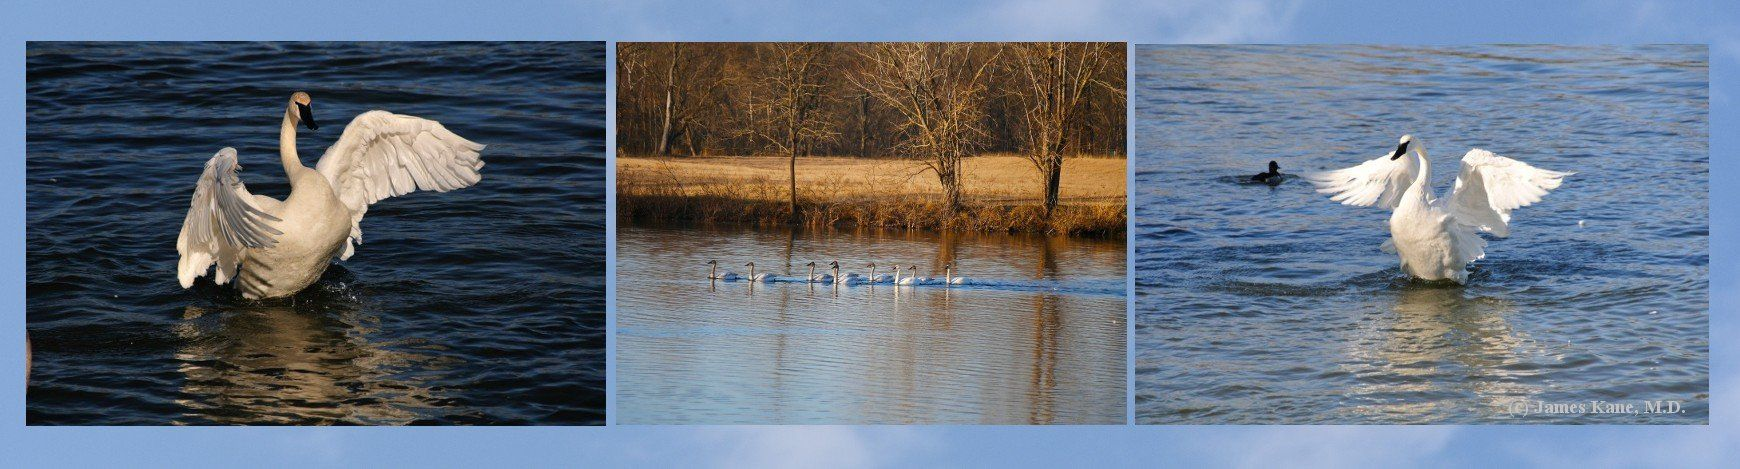 Trumpeter Watch is The Trumpeter Swan Society's citizen science program to track swan migration and rest stops